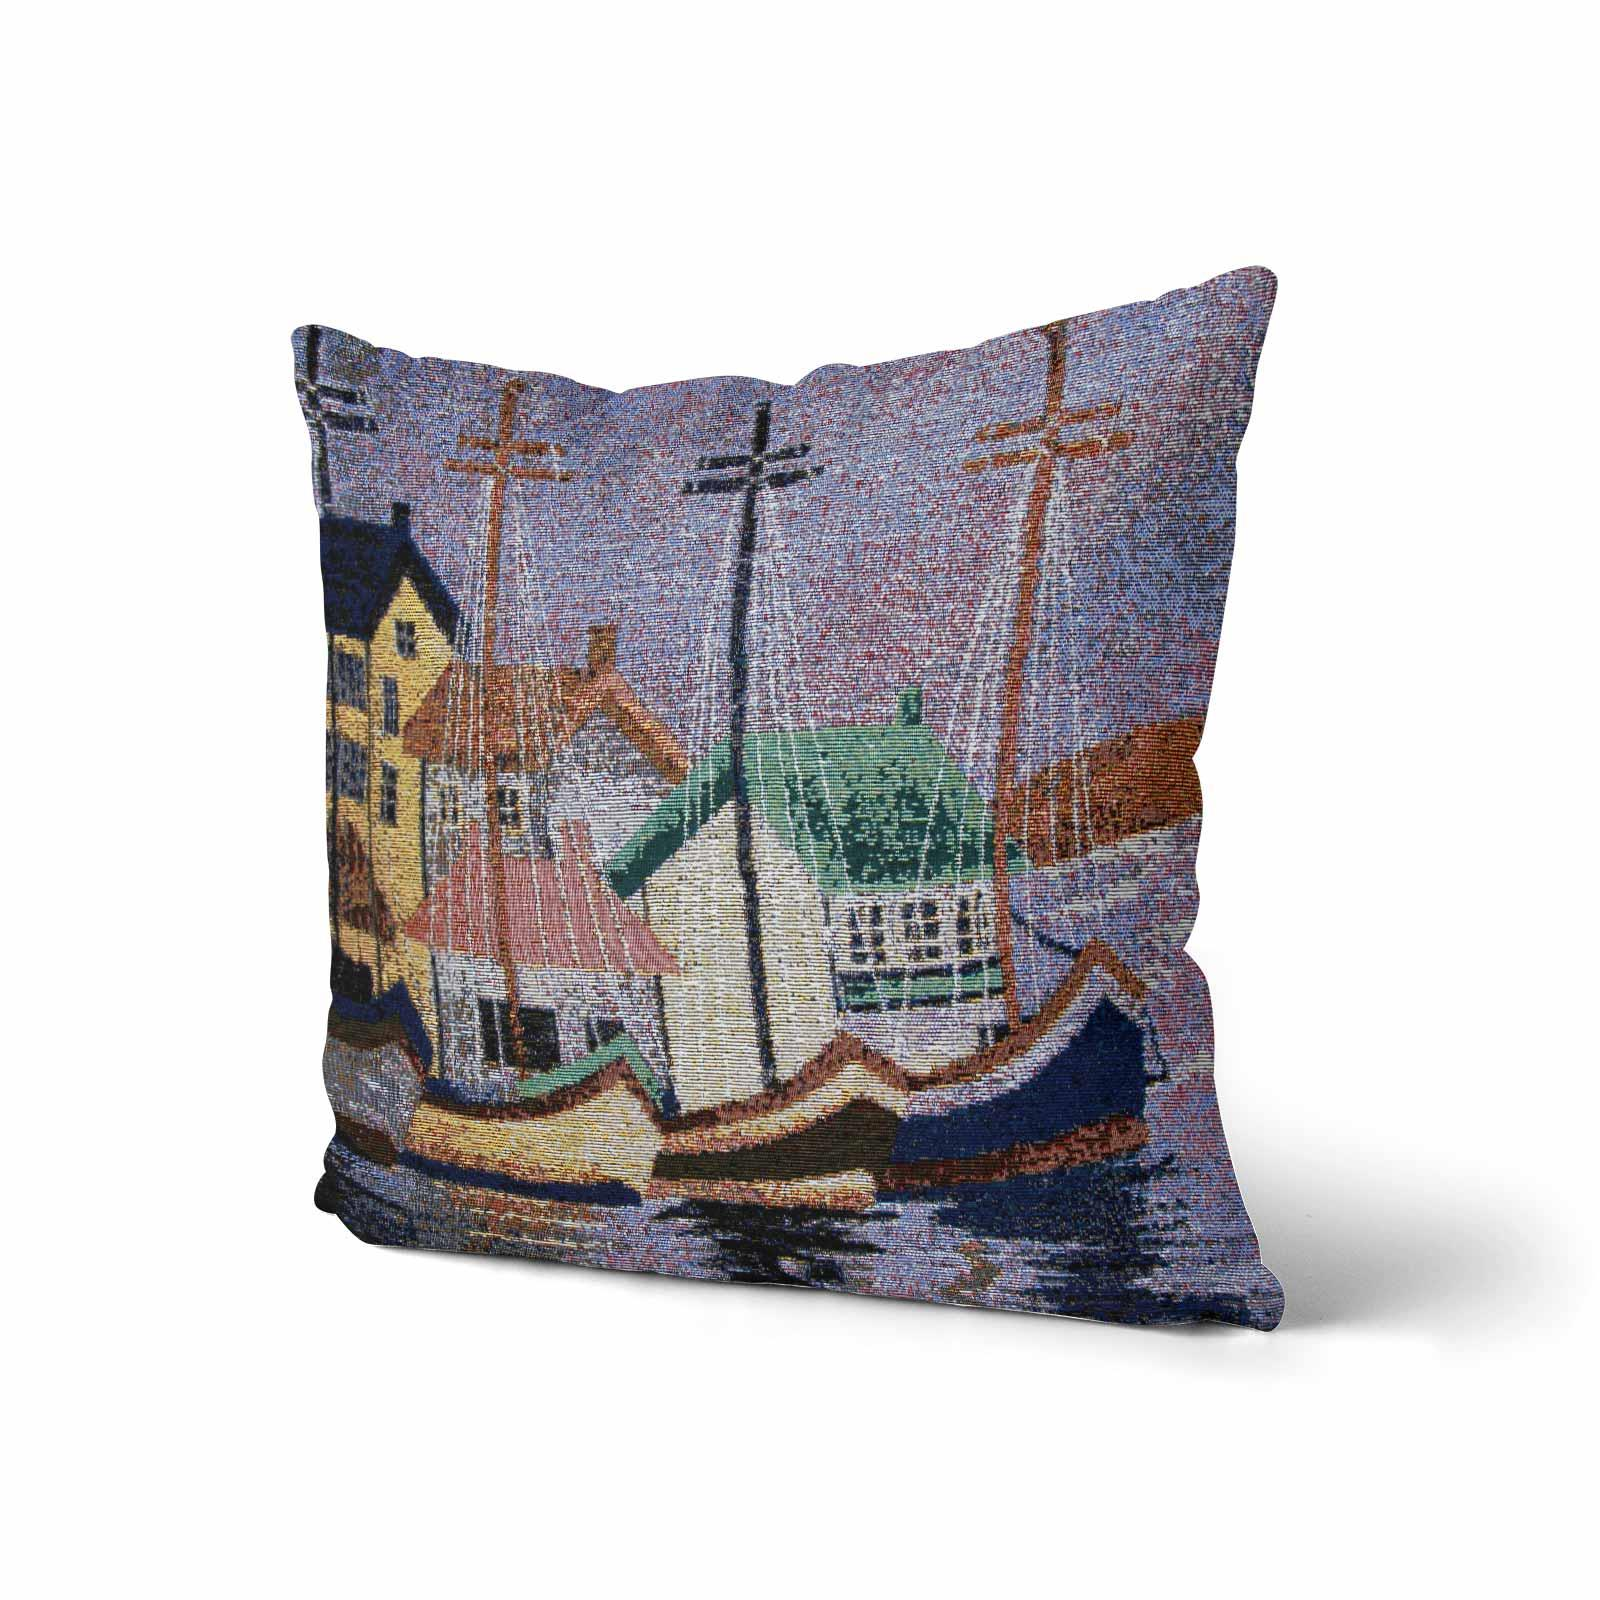 Tapestry-Cushion-Covers-Vintage-Pillow-Cover-Collection-18-034-45cm-Filled-Cushions thumbnail 196